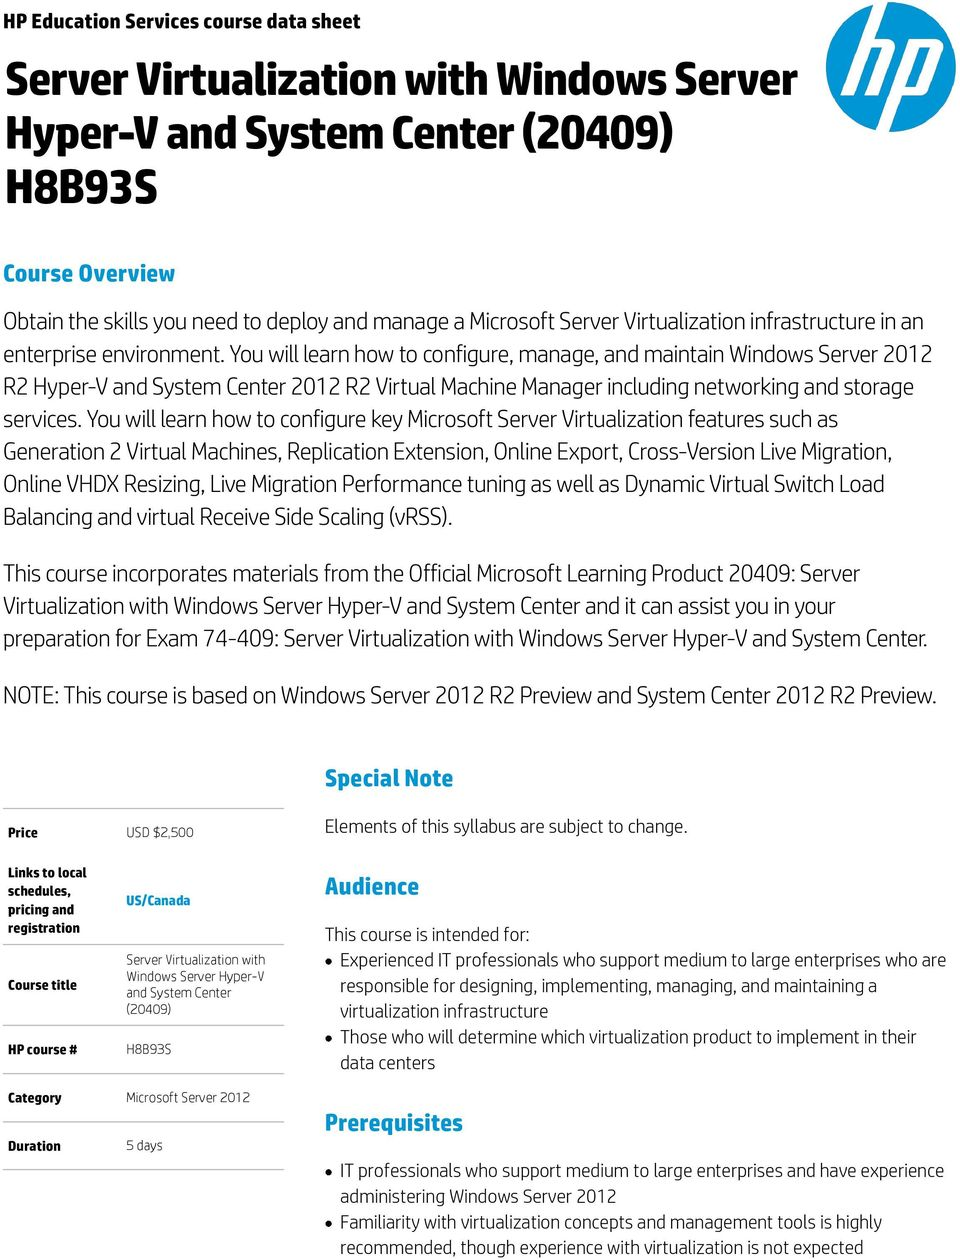 You will learn how to configure, manage, and maintain Windows Server 2012 R2 Hyper-V and System Center 2012 R2 Virtual Machine including networking and storage services.